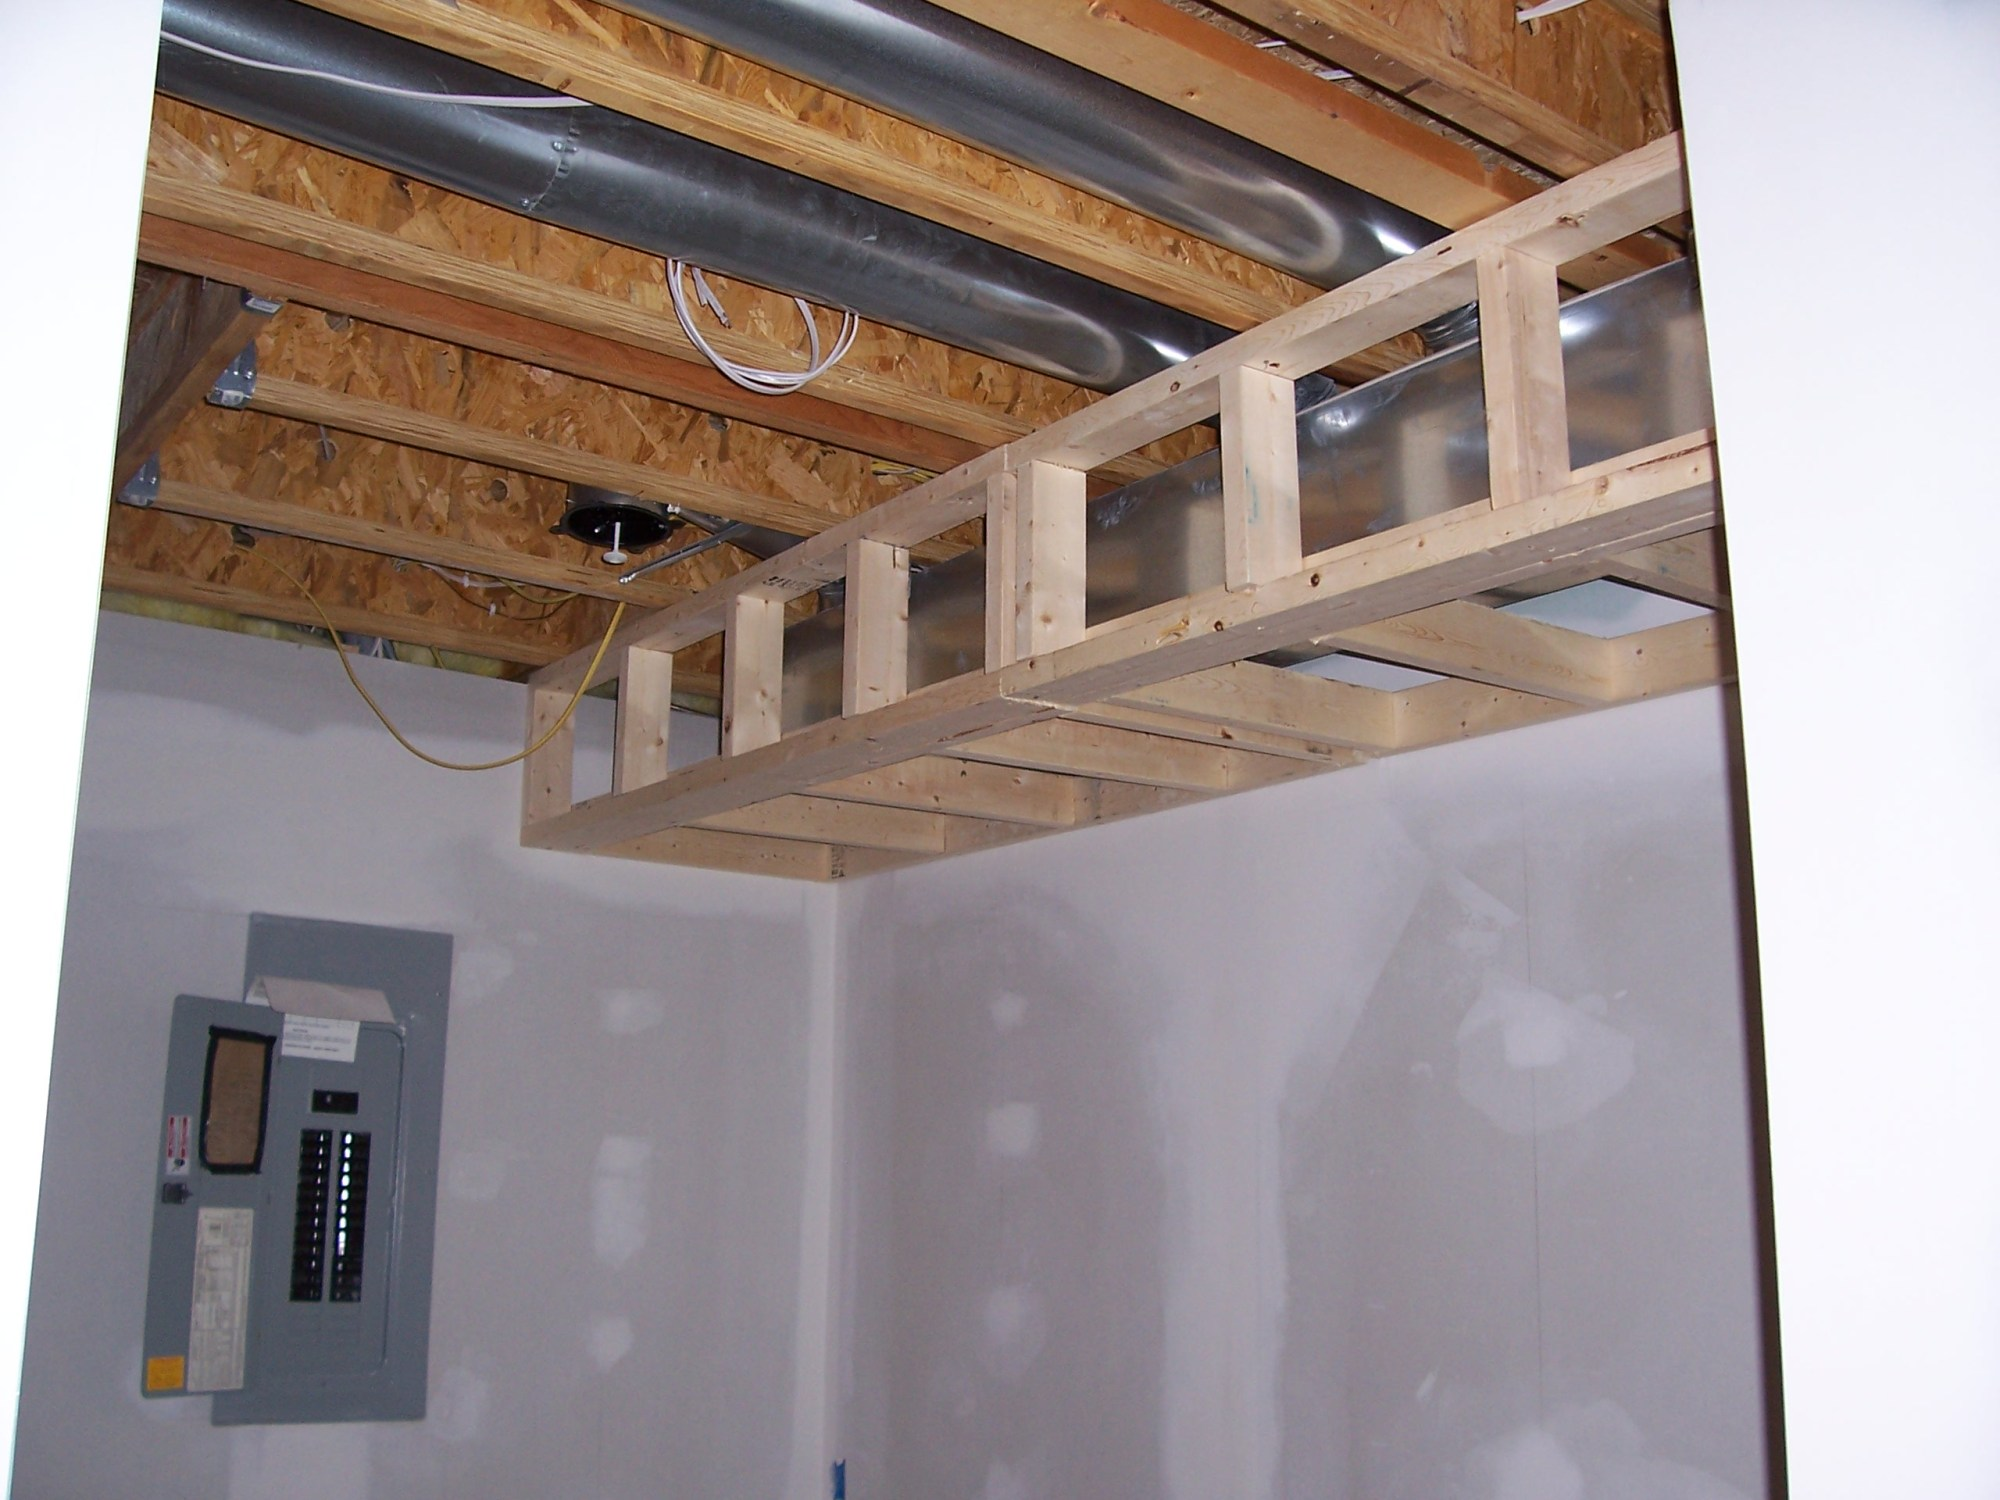 hight resolution of file air duct and fuse box in a construction site jpg